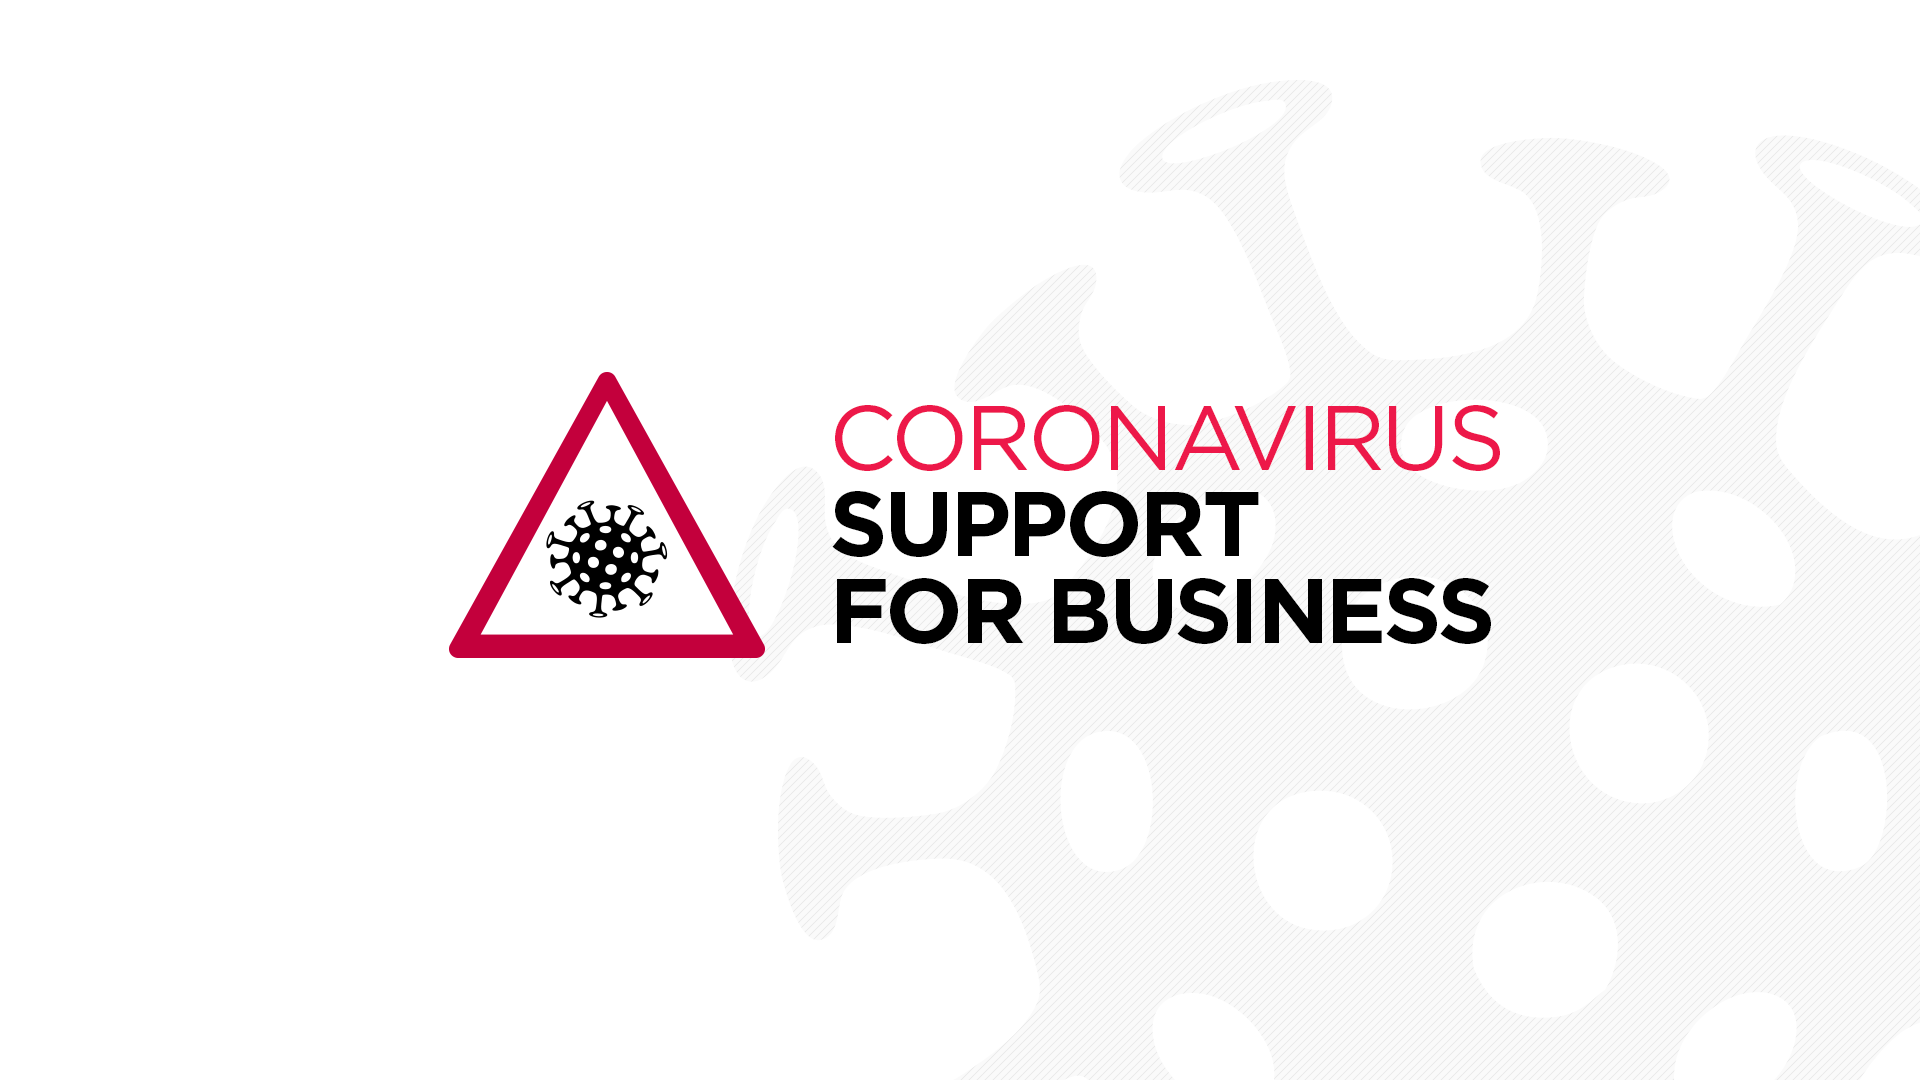 BCC responds to boost for Coronavirus business support schemes